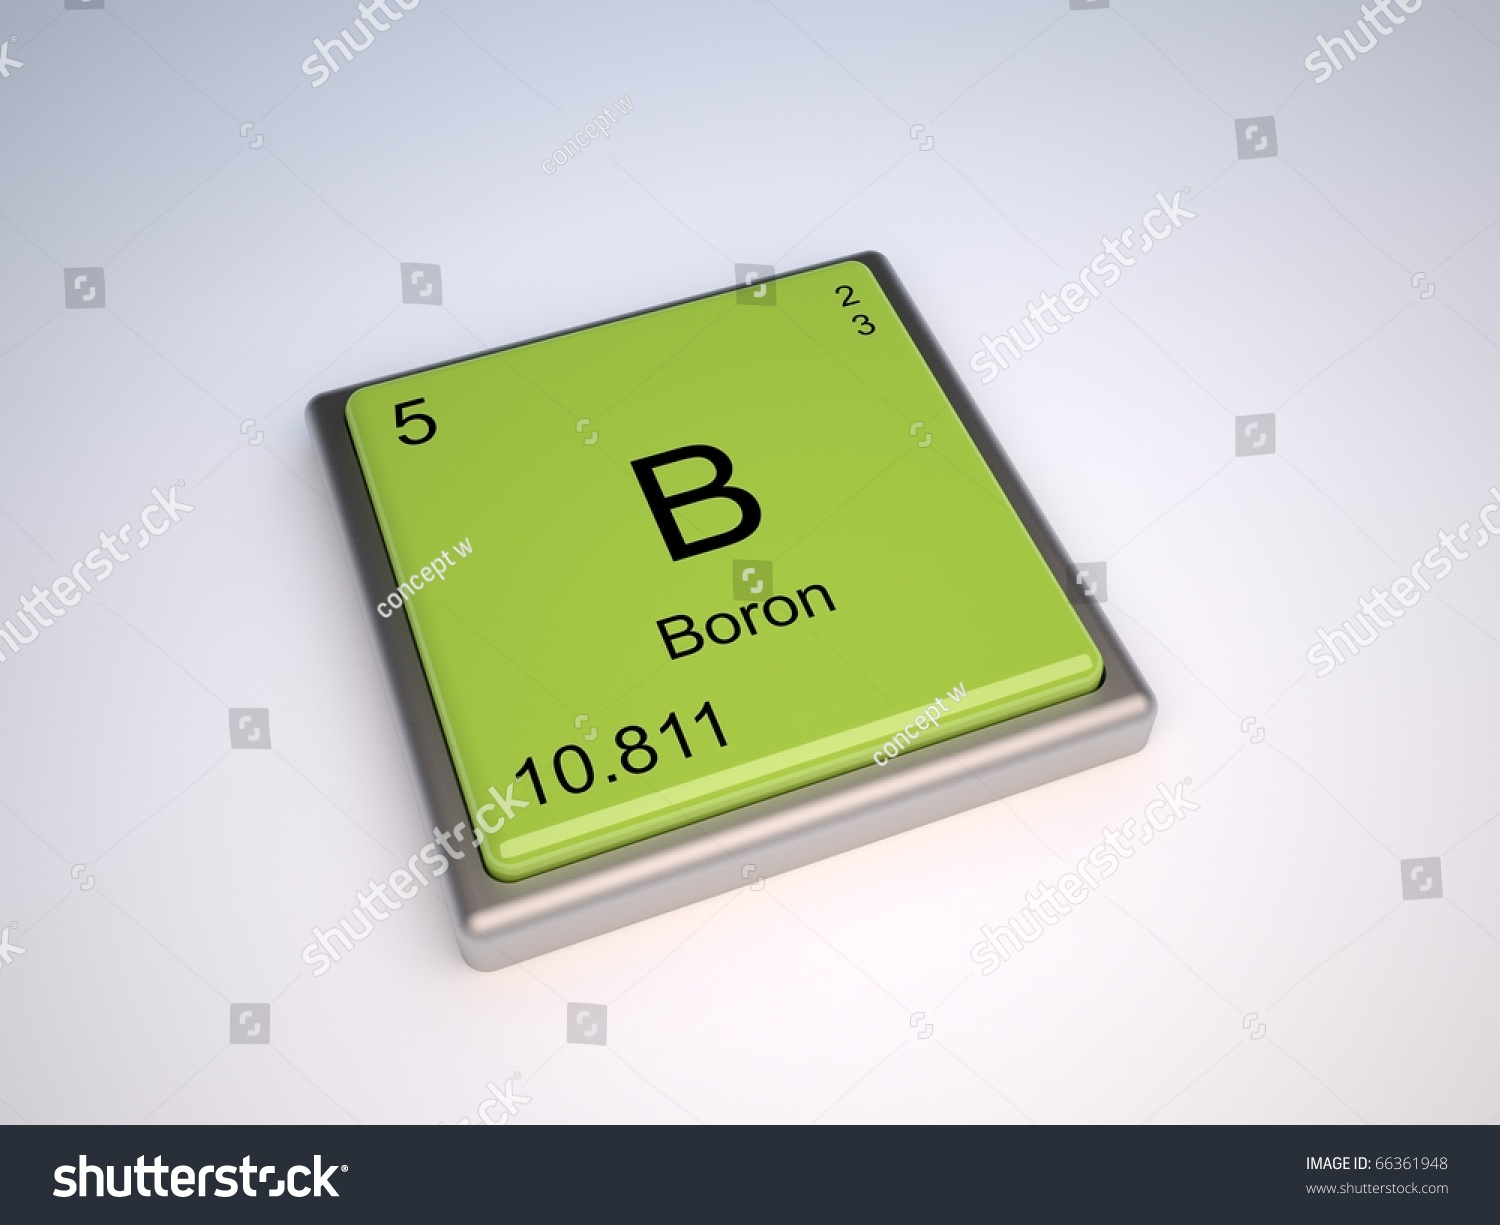 Boron chemical element periodic table symbol stock illustration boron chemical element of periodic table with symbol b gamestrikefo Choice Image